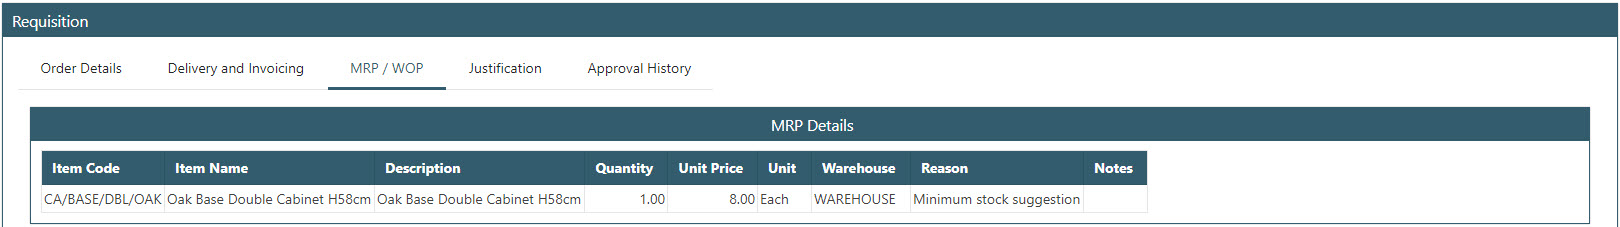 Sicon WAP Purchase Requisitions Help and User Guide - Requisition HUG Section 19.5 Image 2